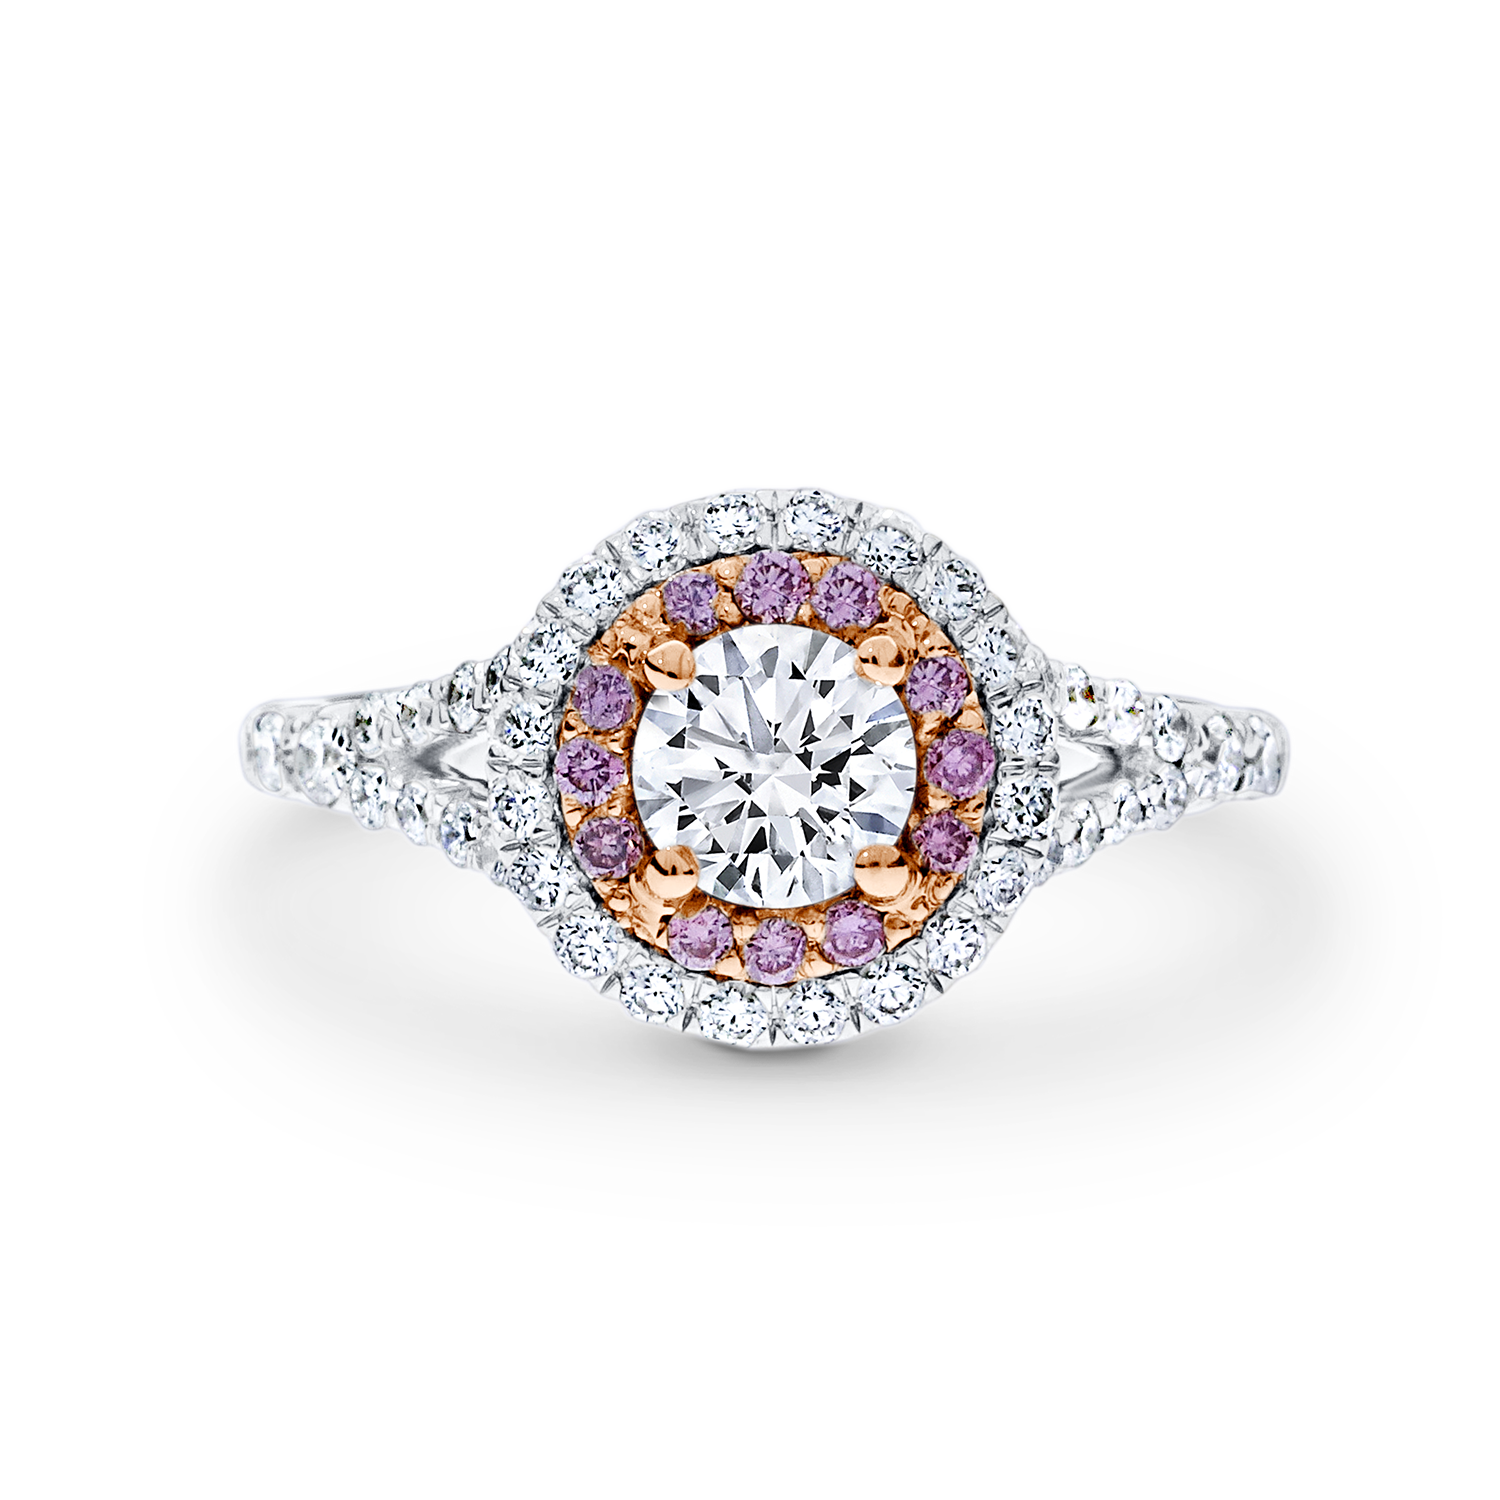 vie diamond jewellery jewelry dousset la argyle engagement rose cut jean ring play rings pink en diamonds eva oval